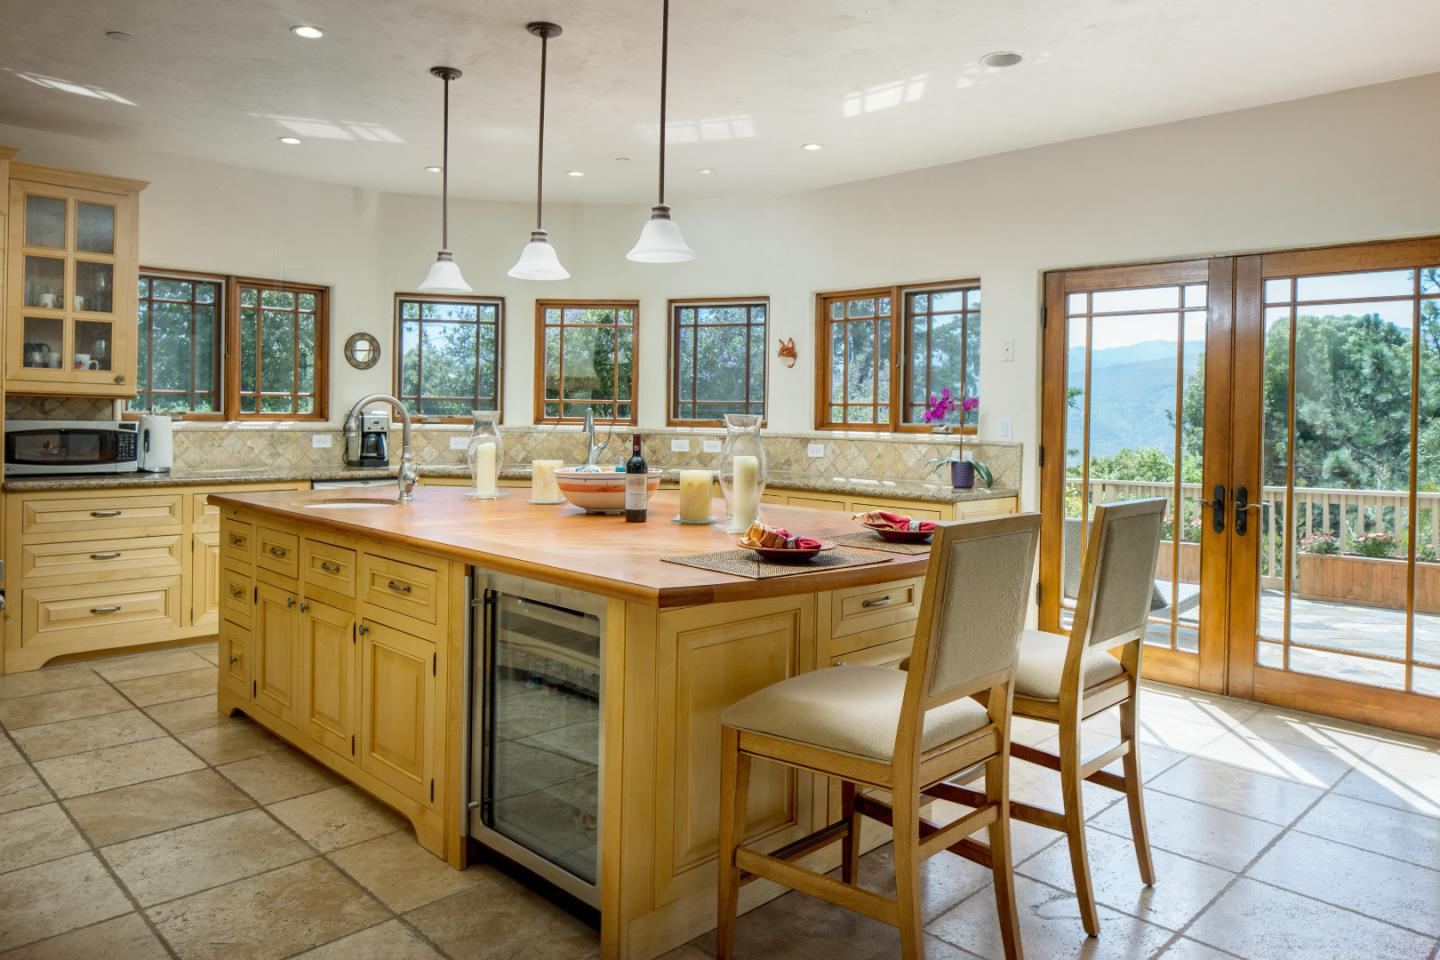 Additional photo for property listing at 175 Chaparral Road  Carmel Valley, カリフォルニア 93924 アメリカ合衆国